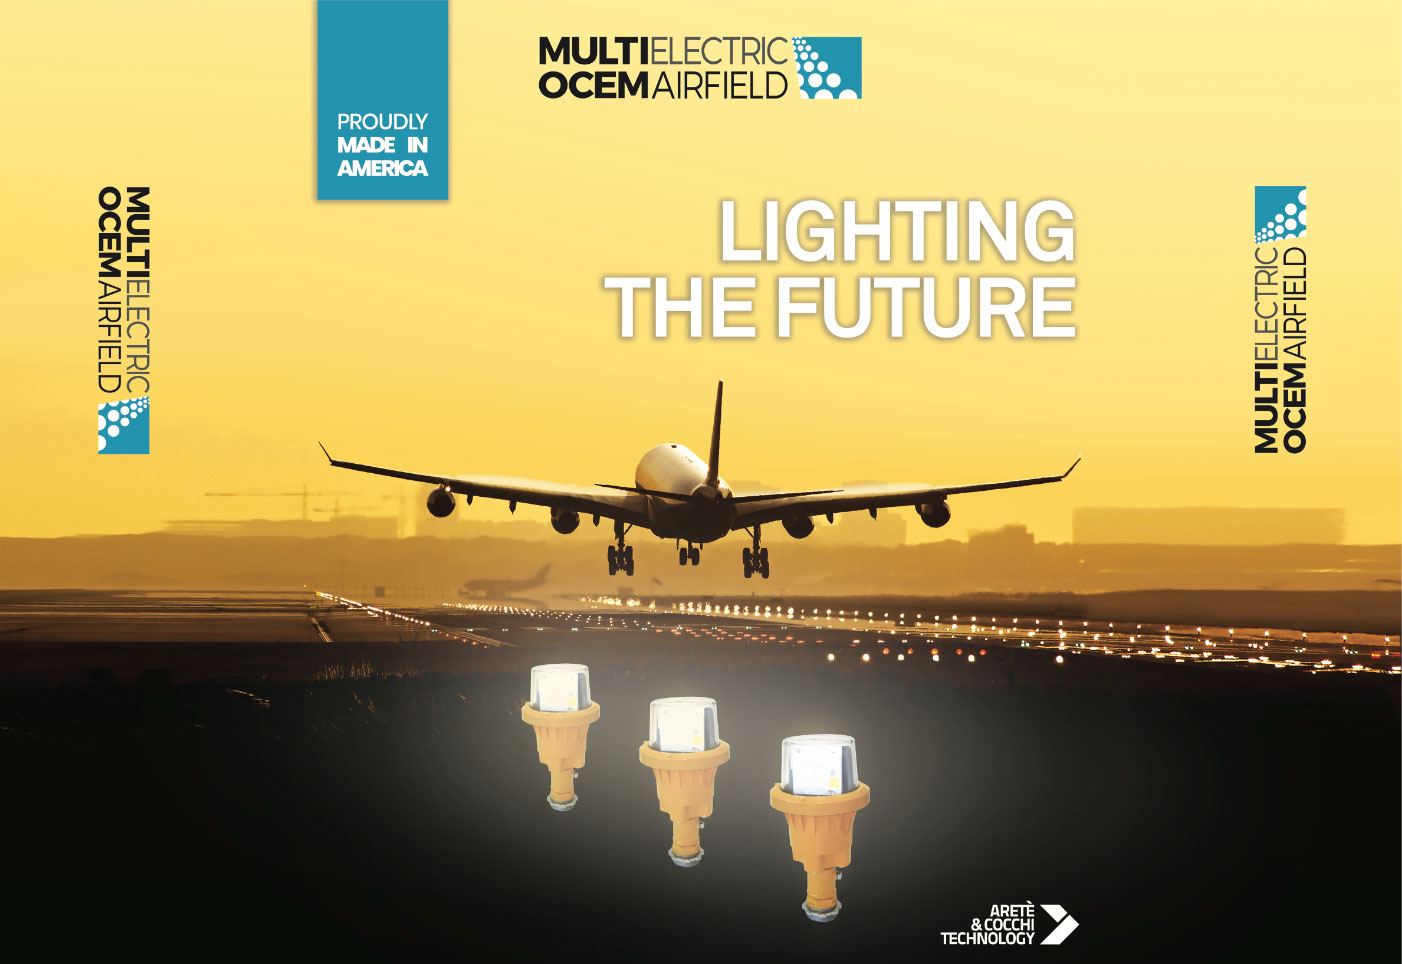 June 16 – 19, MULTI ELECTRIC- OCEM AIRFIELD showcases at the 91st Annual AAAE Conference & Exposition